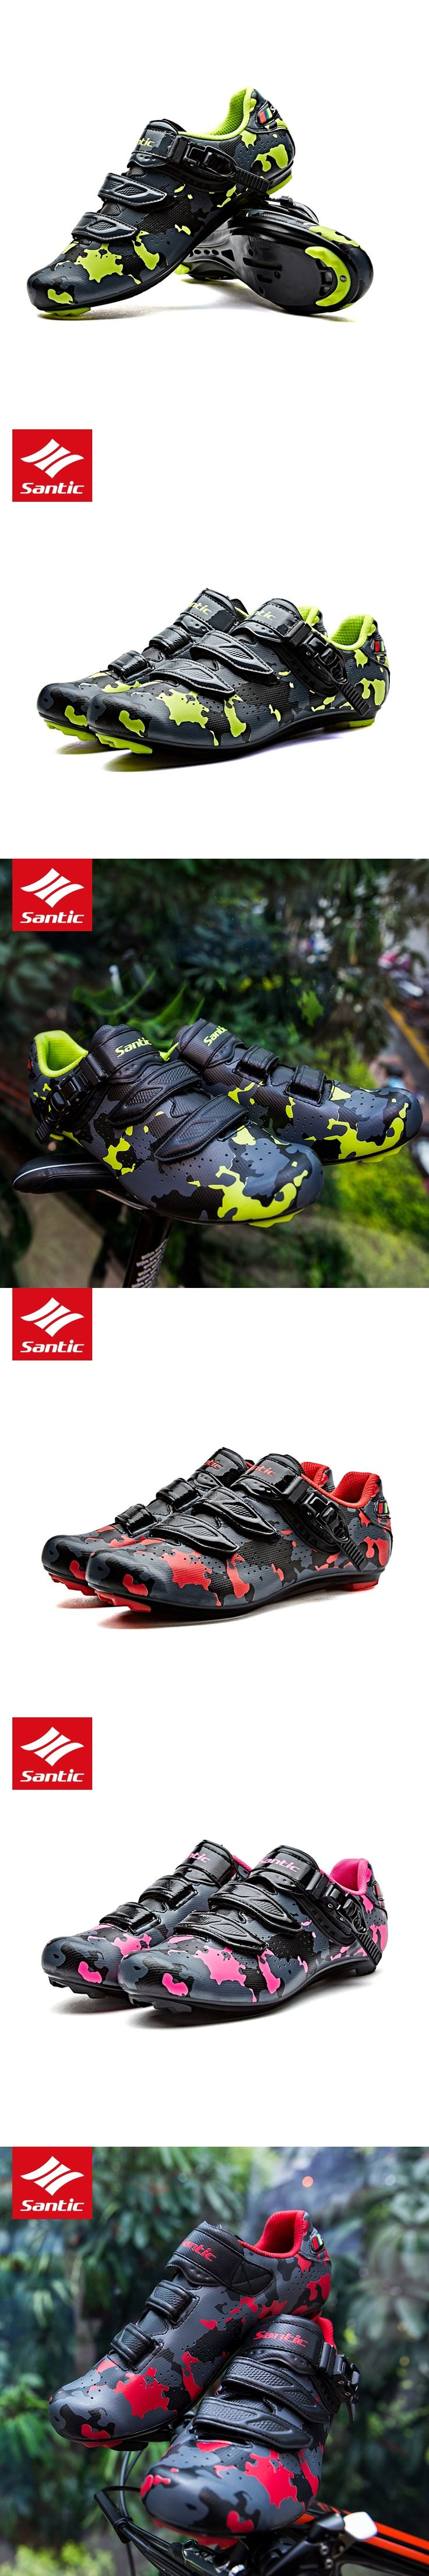 2017 New Arrival Santic Professional Road Cycling Shoes Men Road Bike Shoes Nylon Soles Cozy Self-locking Bicycle Shoes Sneakers